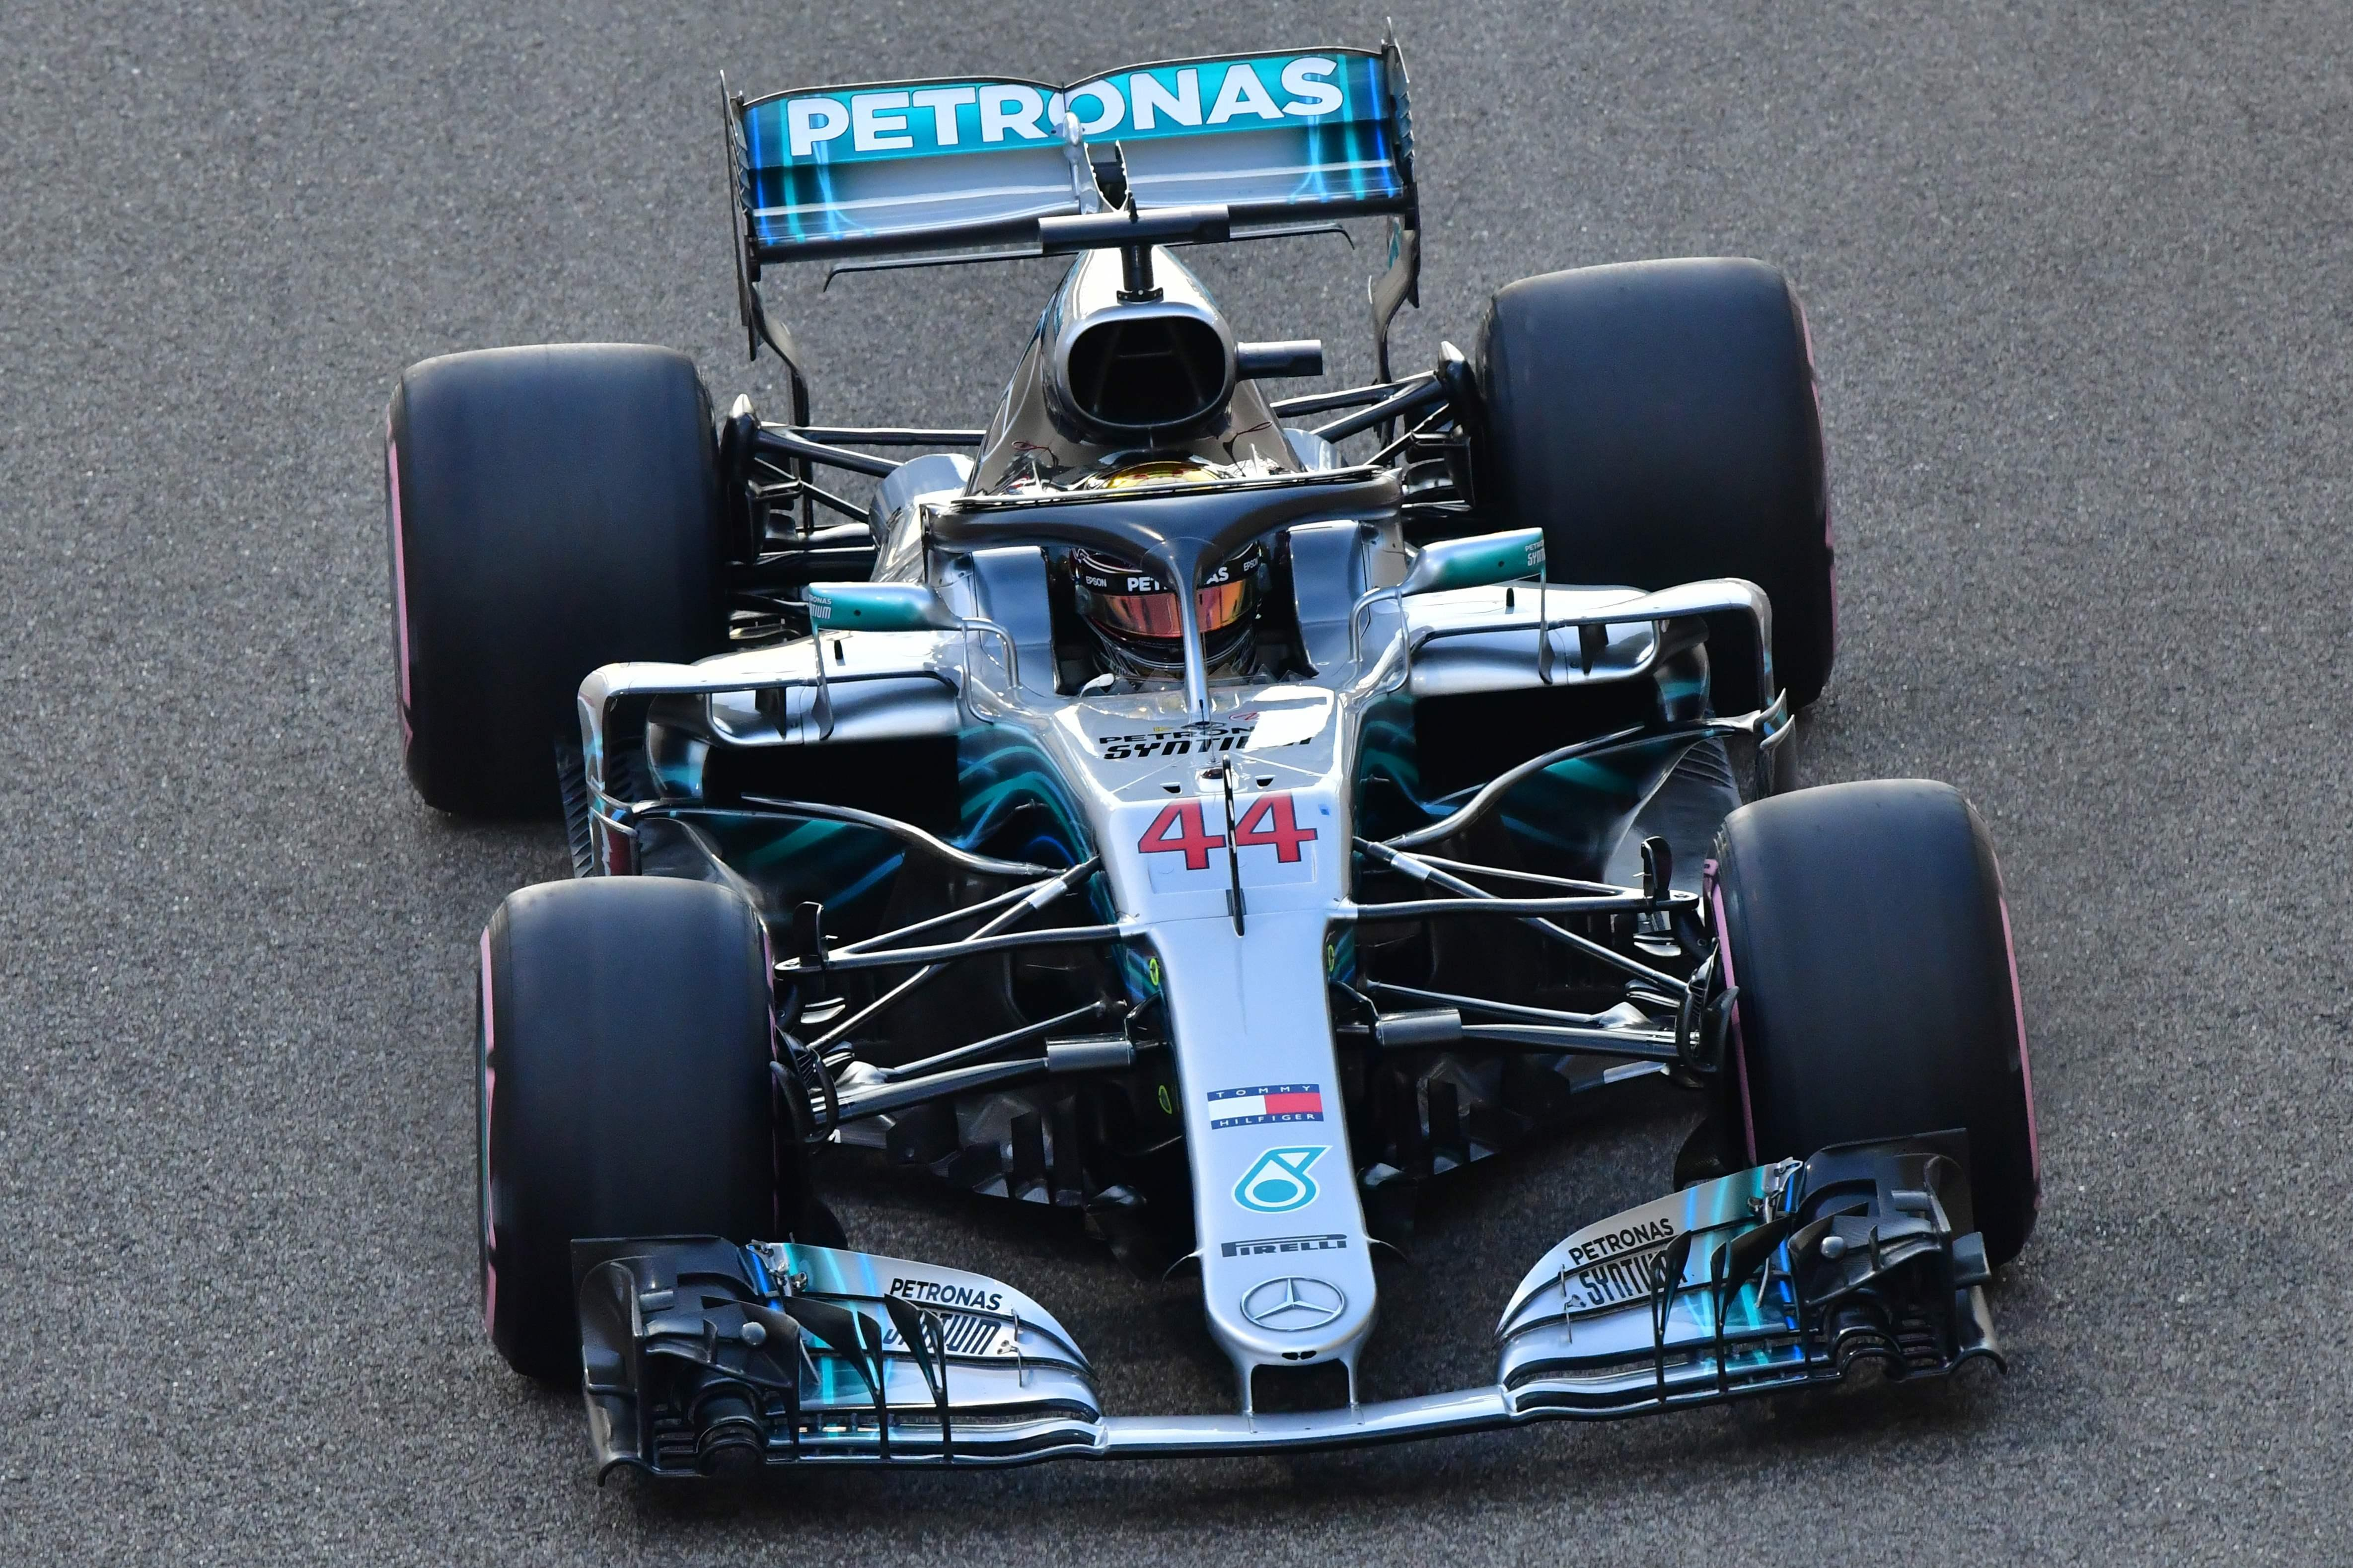 Hamilton will be desperate to consolidate his start from pole in Abu Dhabi and convert it into another win